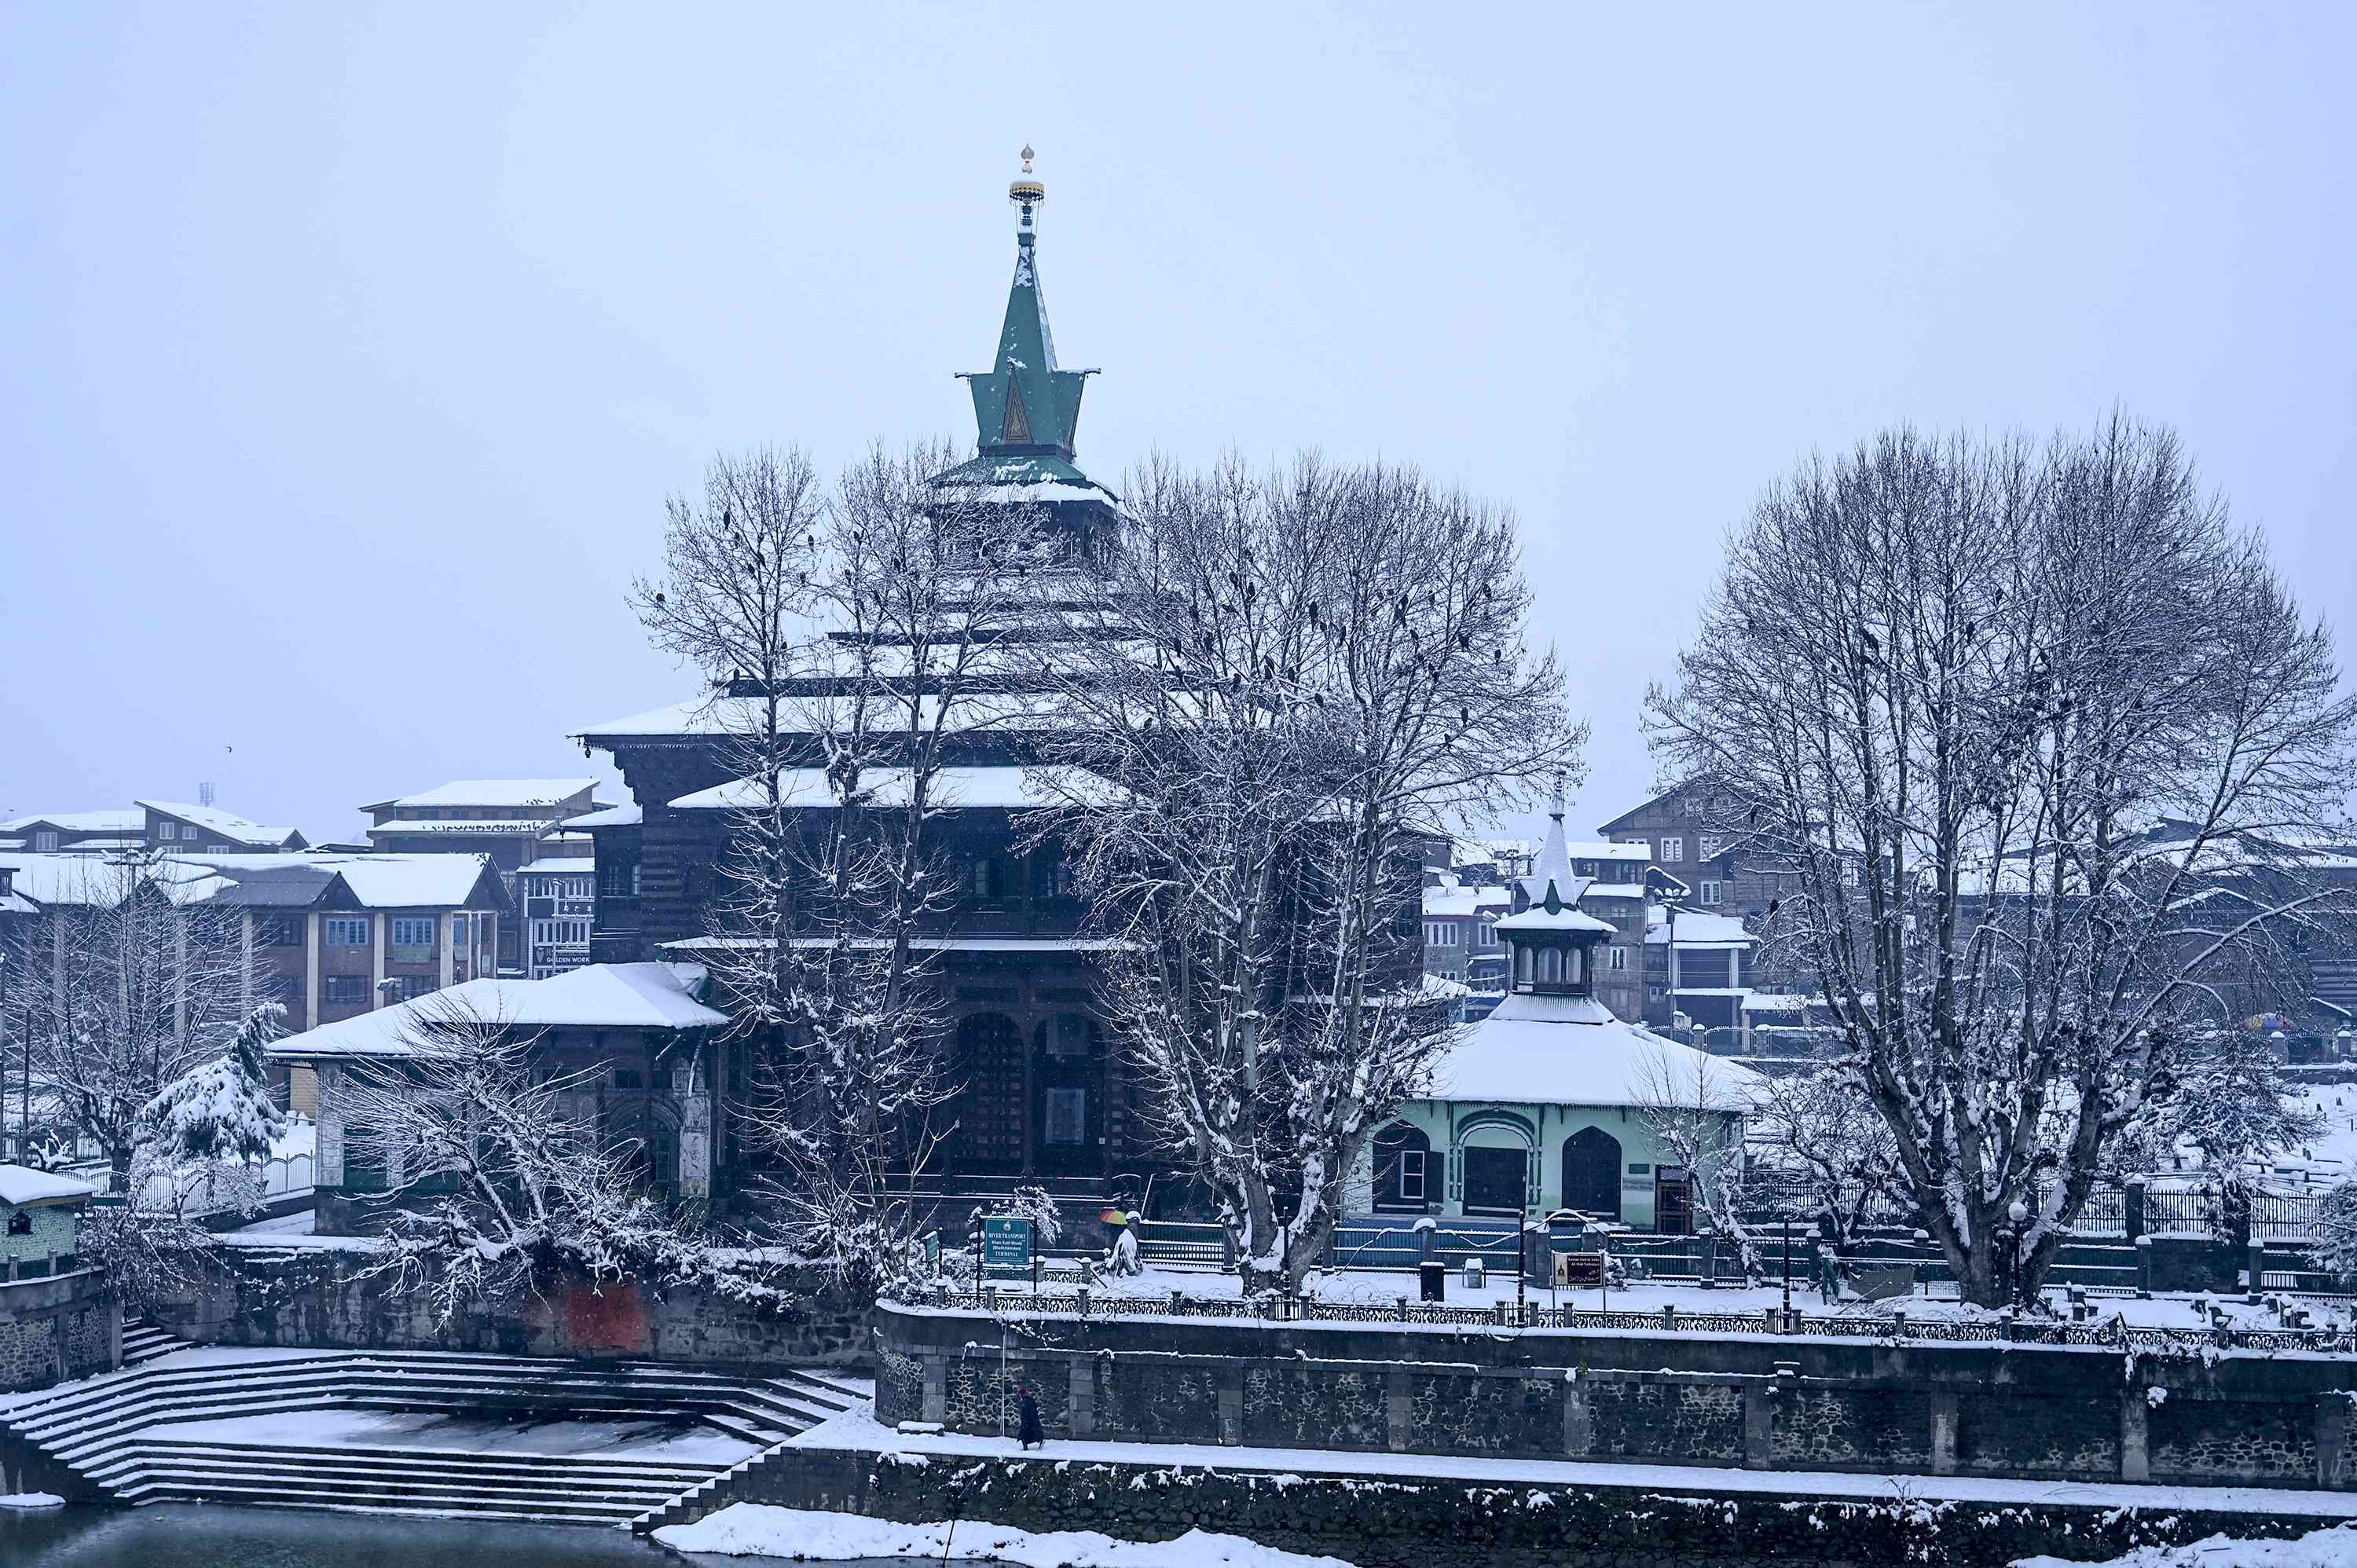 Sufi shrine Shahi-Hamdan in Srinagar